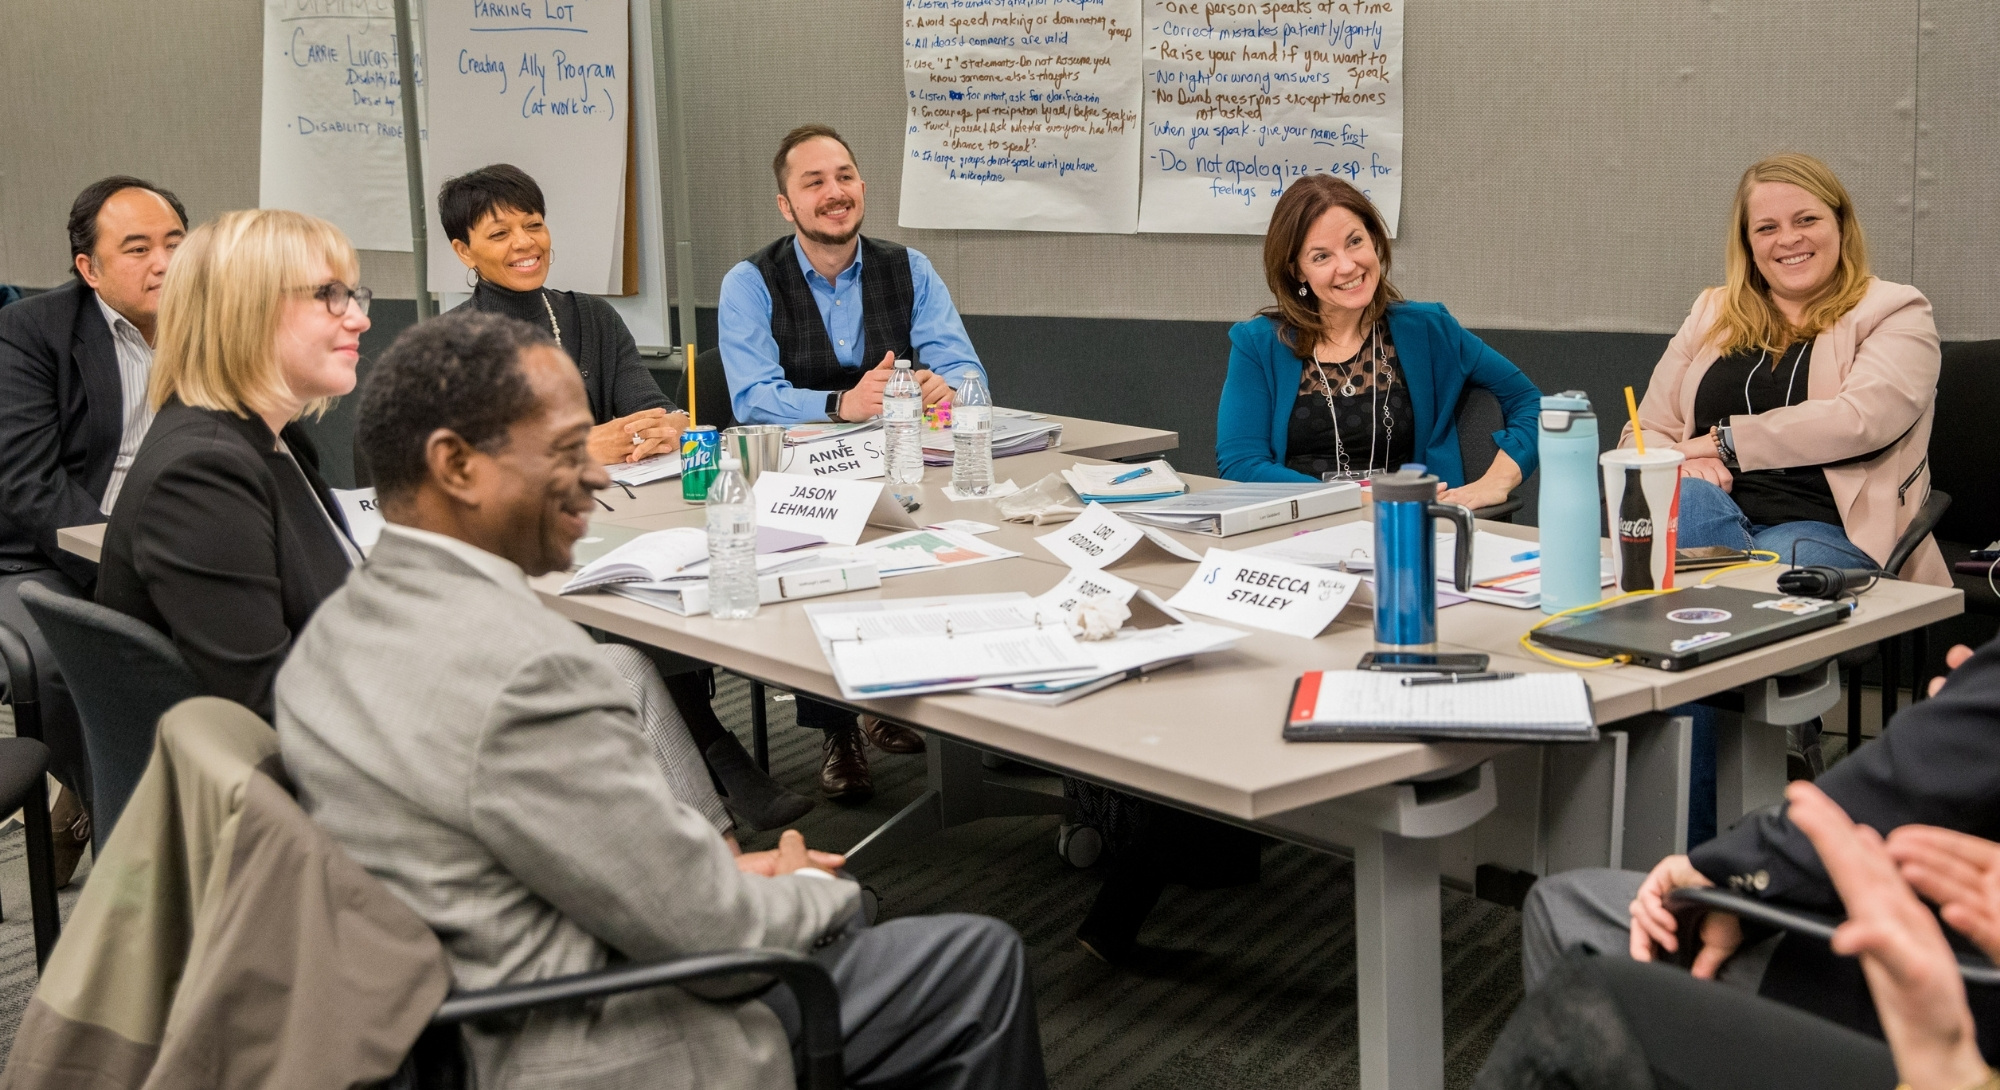 A group of people of various ages, races, genders, and abilities sit around a messy conference table covered in papers and refreshments, smiling at someone off camera.